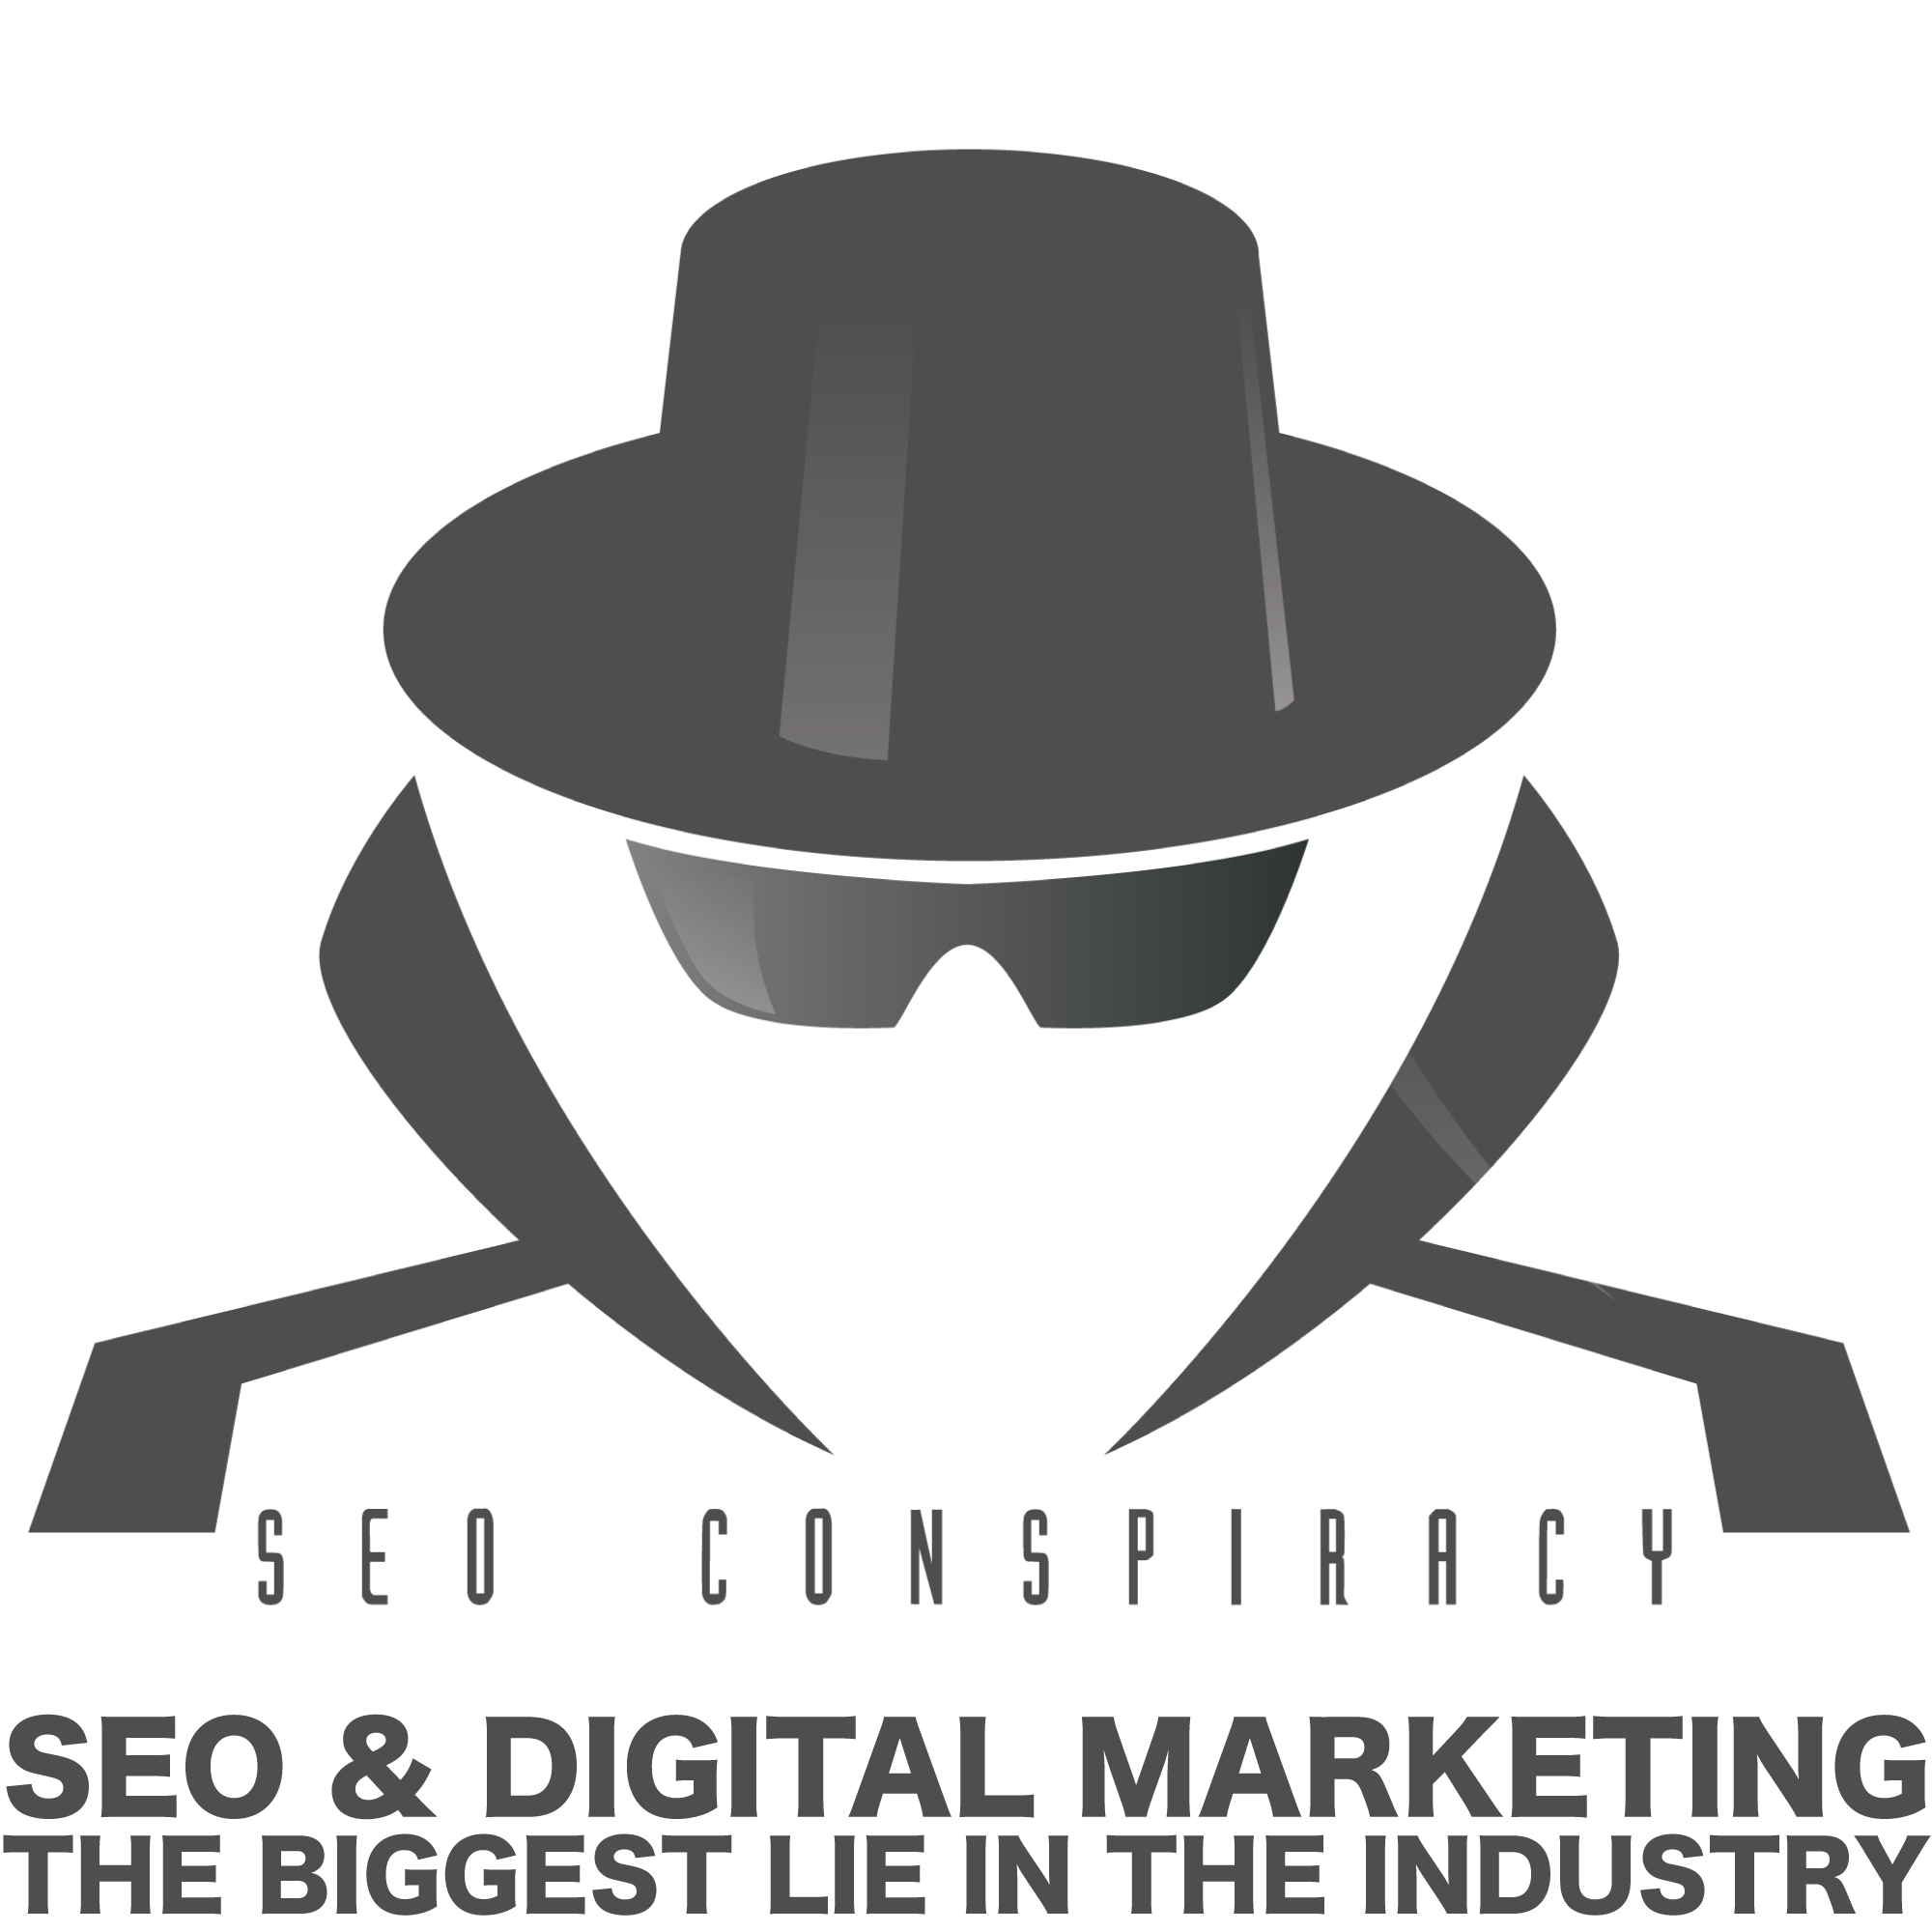 The Biggest Lie in the Digital Marketing and SEO Industry